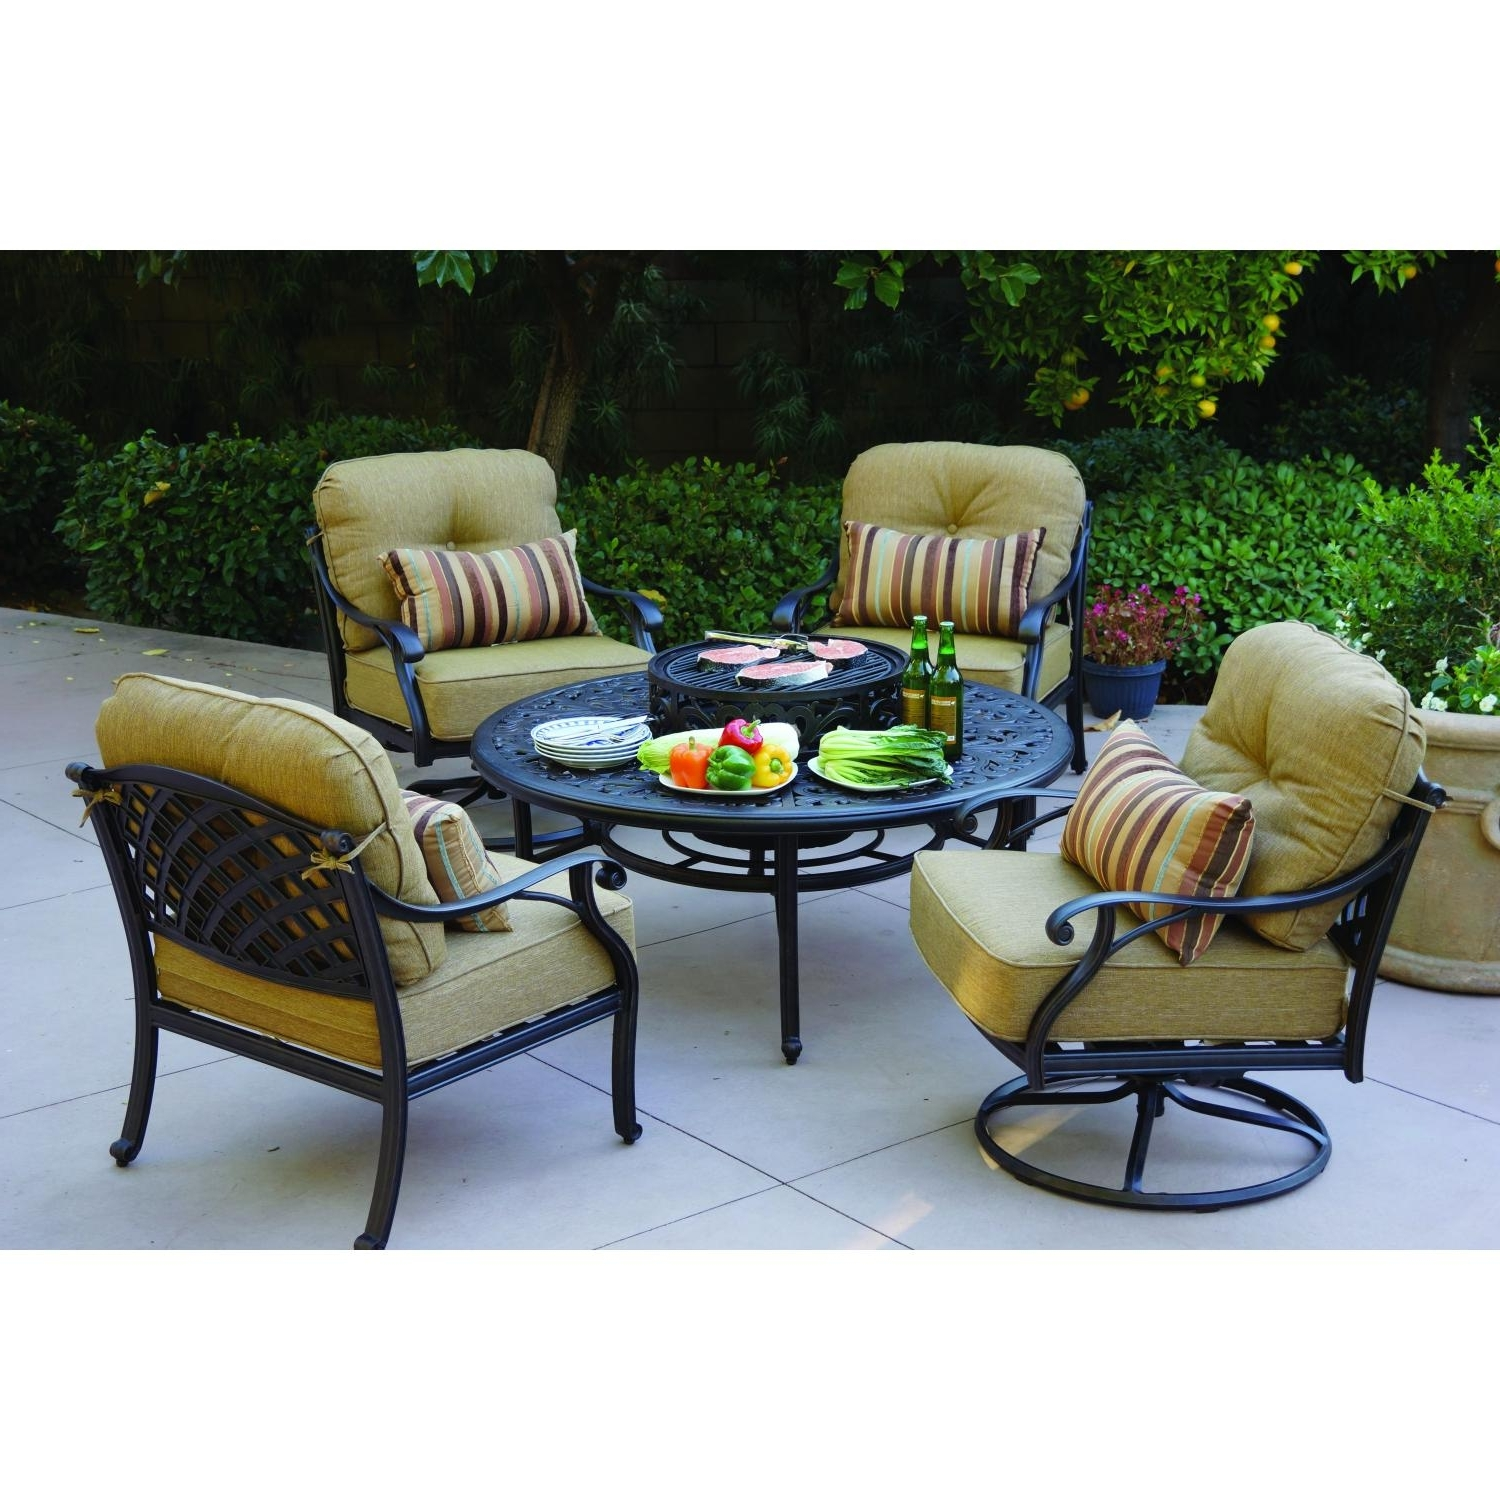 Elegant Agio Patio Furniture Fire Pit Conversation Sets Mexican Fire Within Well Liked Patio Conversation Sets With Fire Pit Table (View 5 of 15)